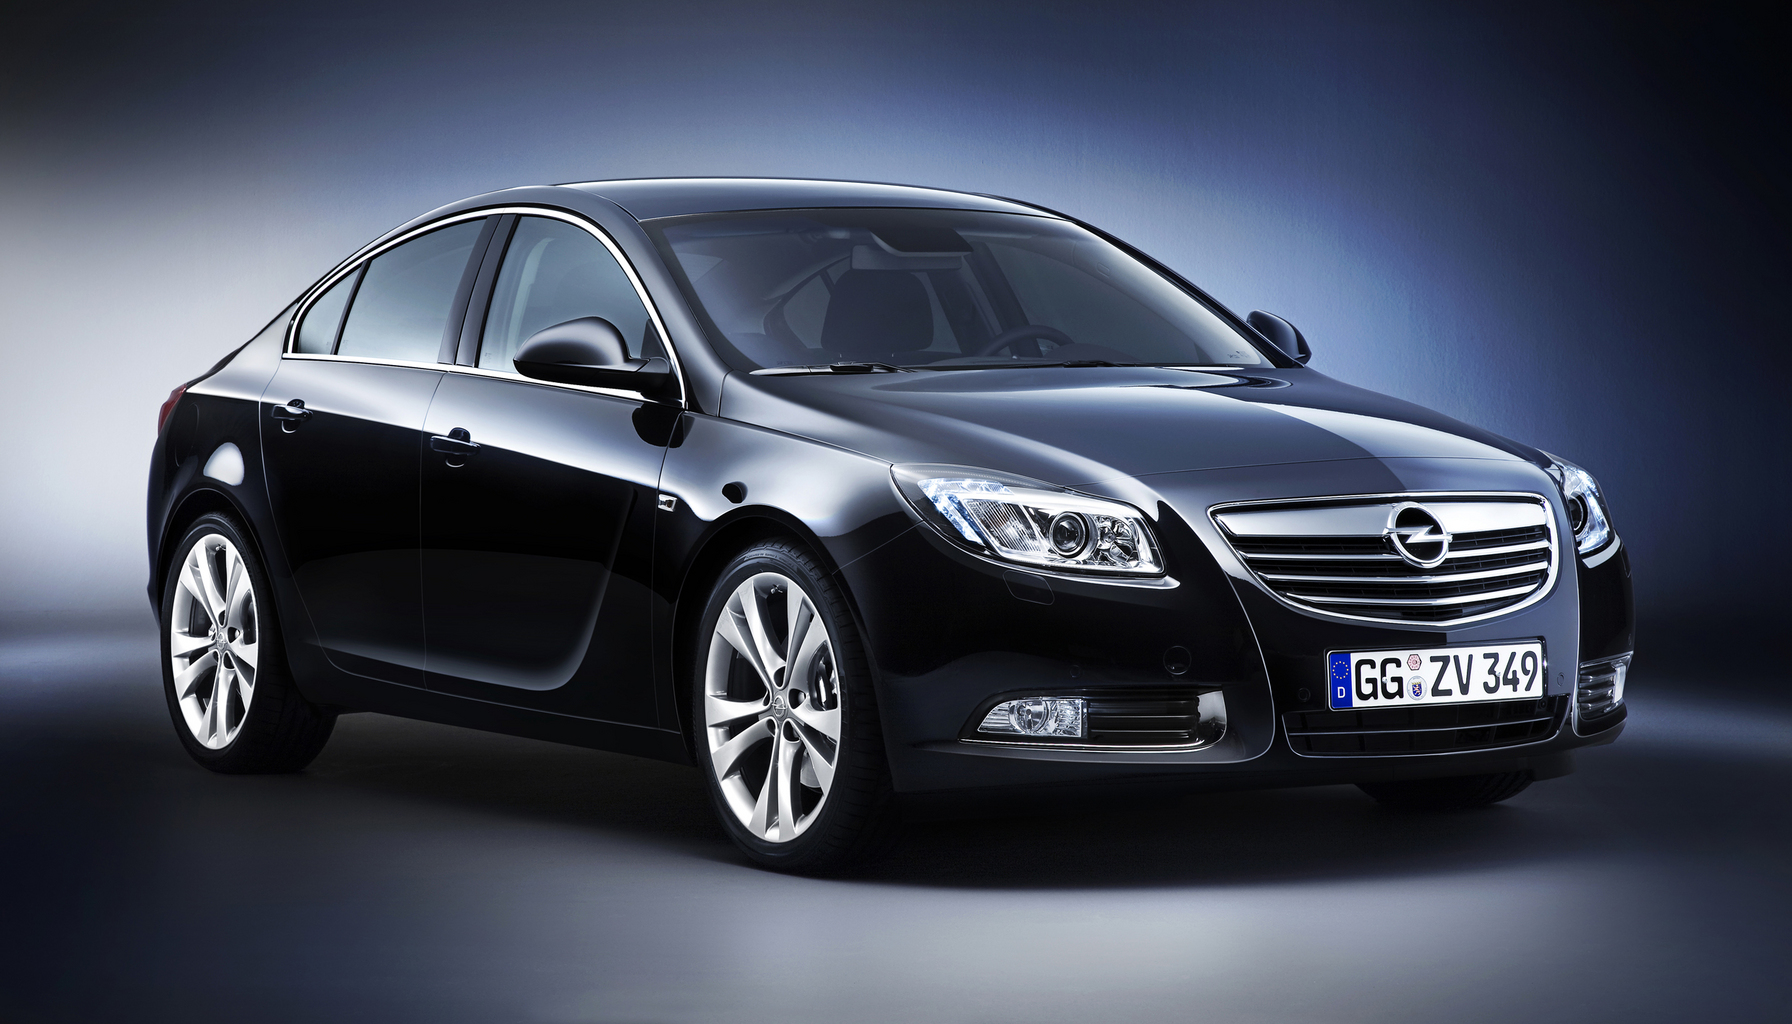 Opel Insignia Auto Wallpapers GroenLicht.be